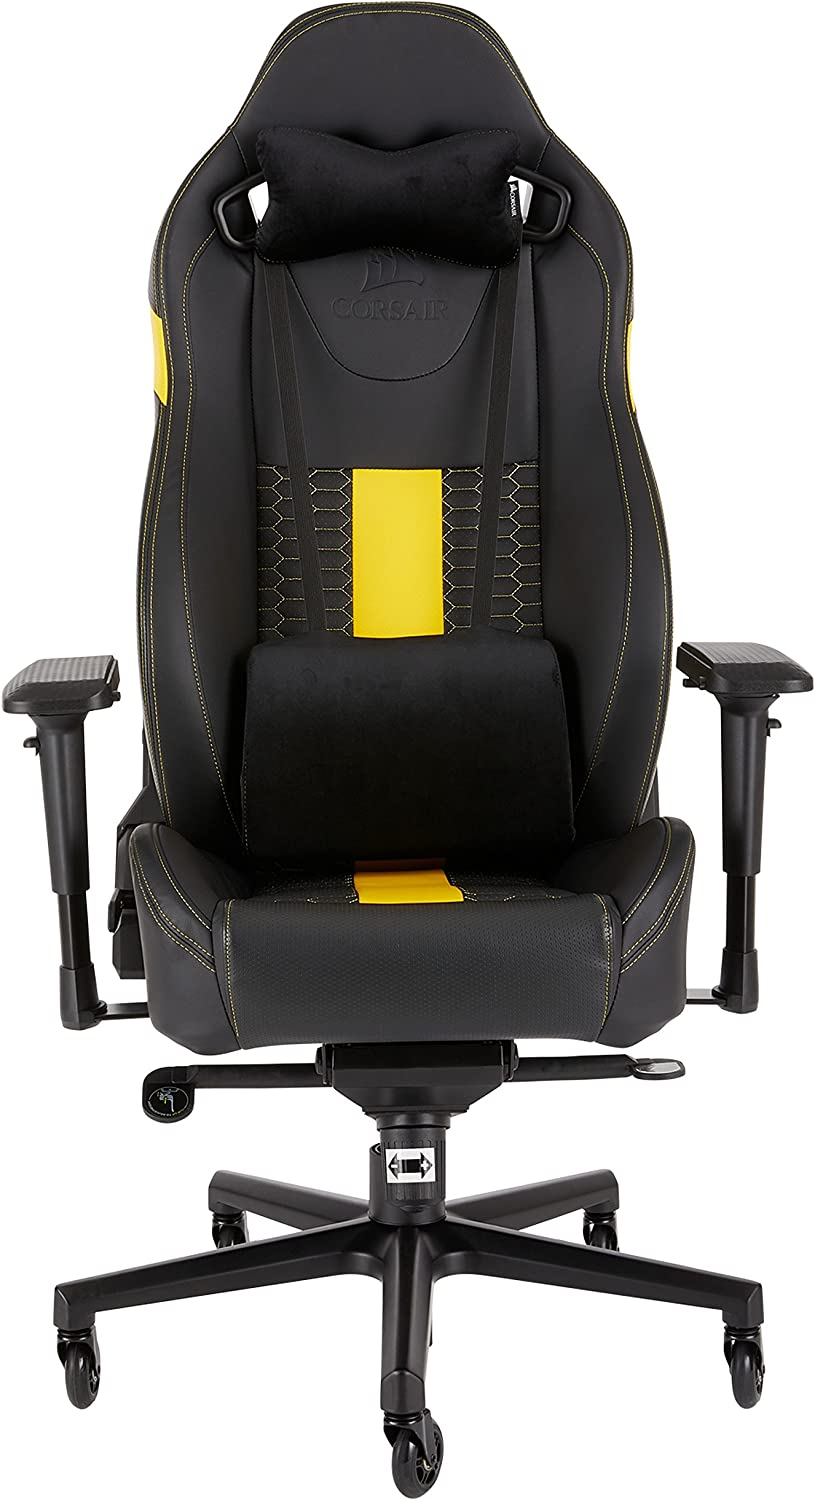 Game chair Corsair Road Warrior